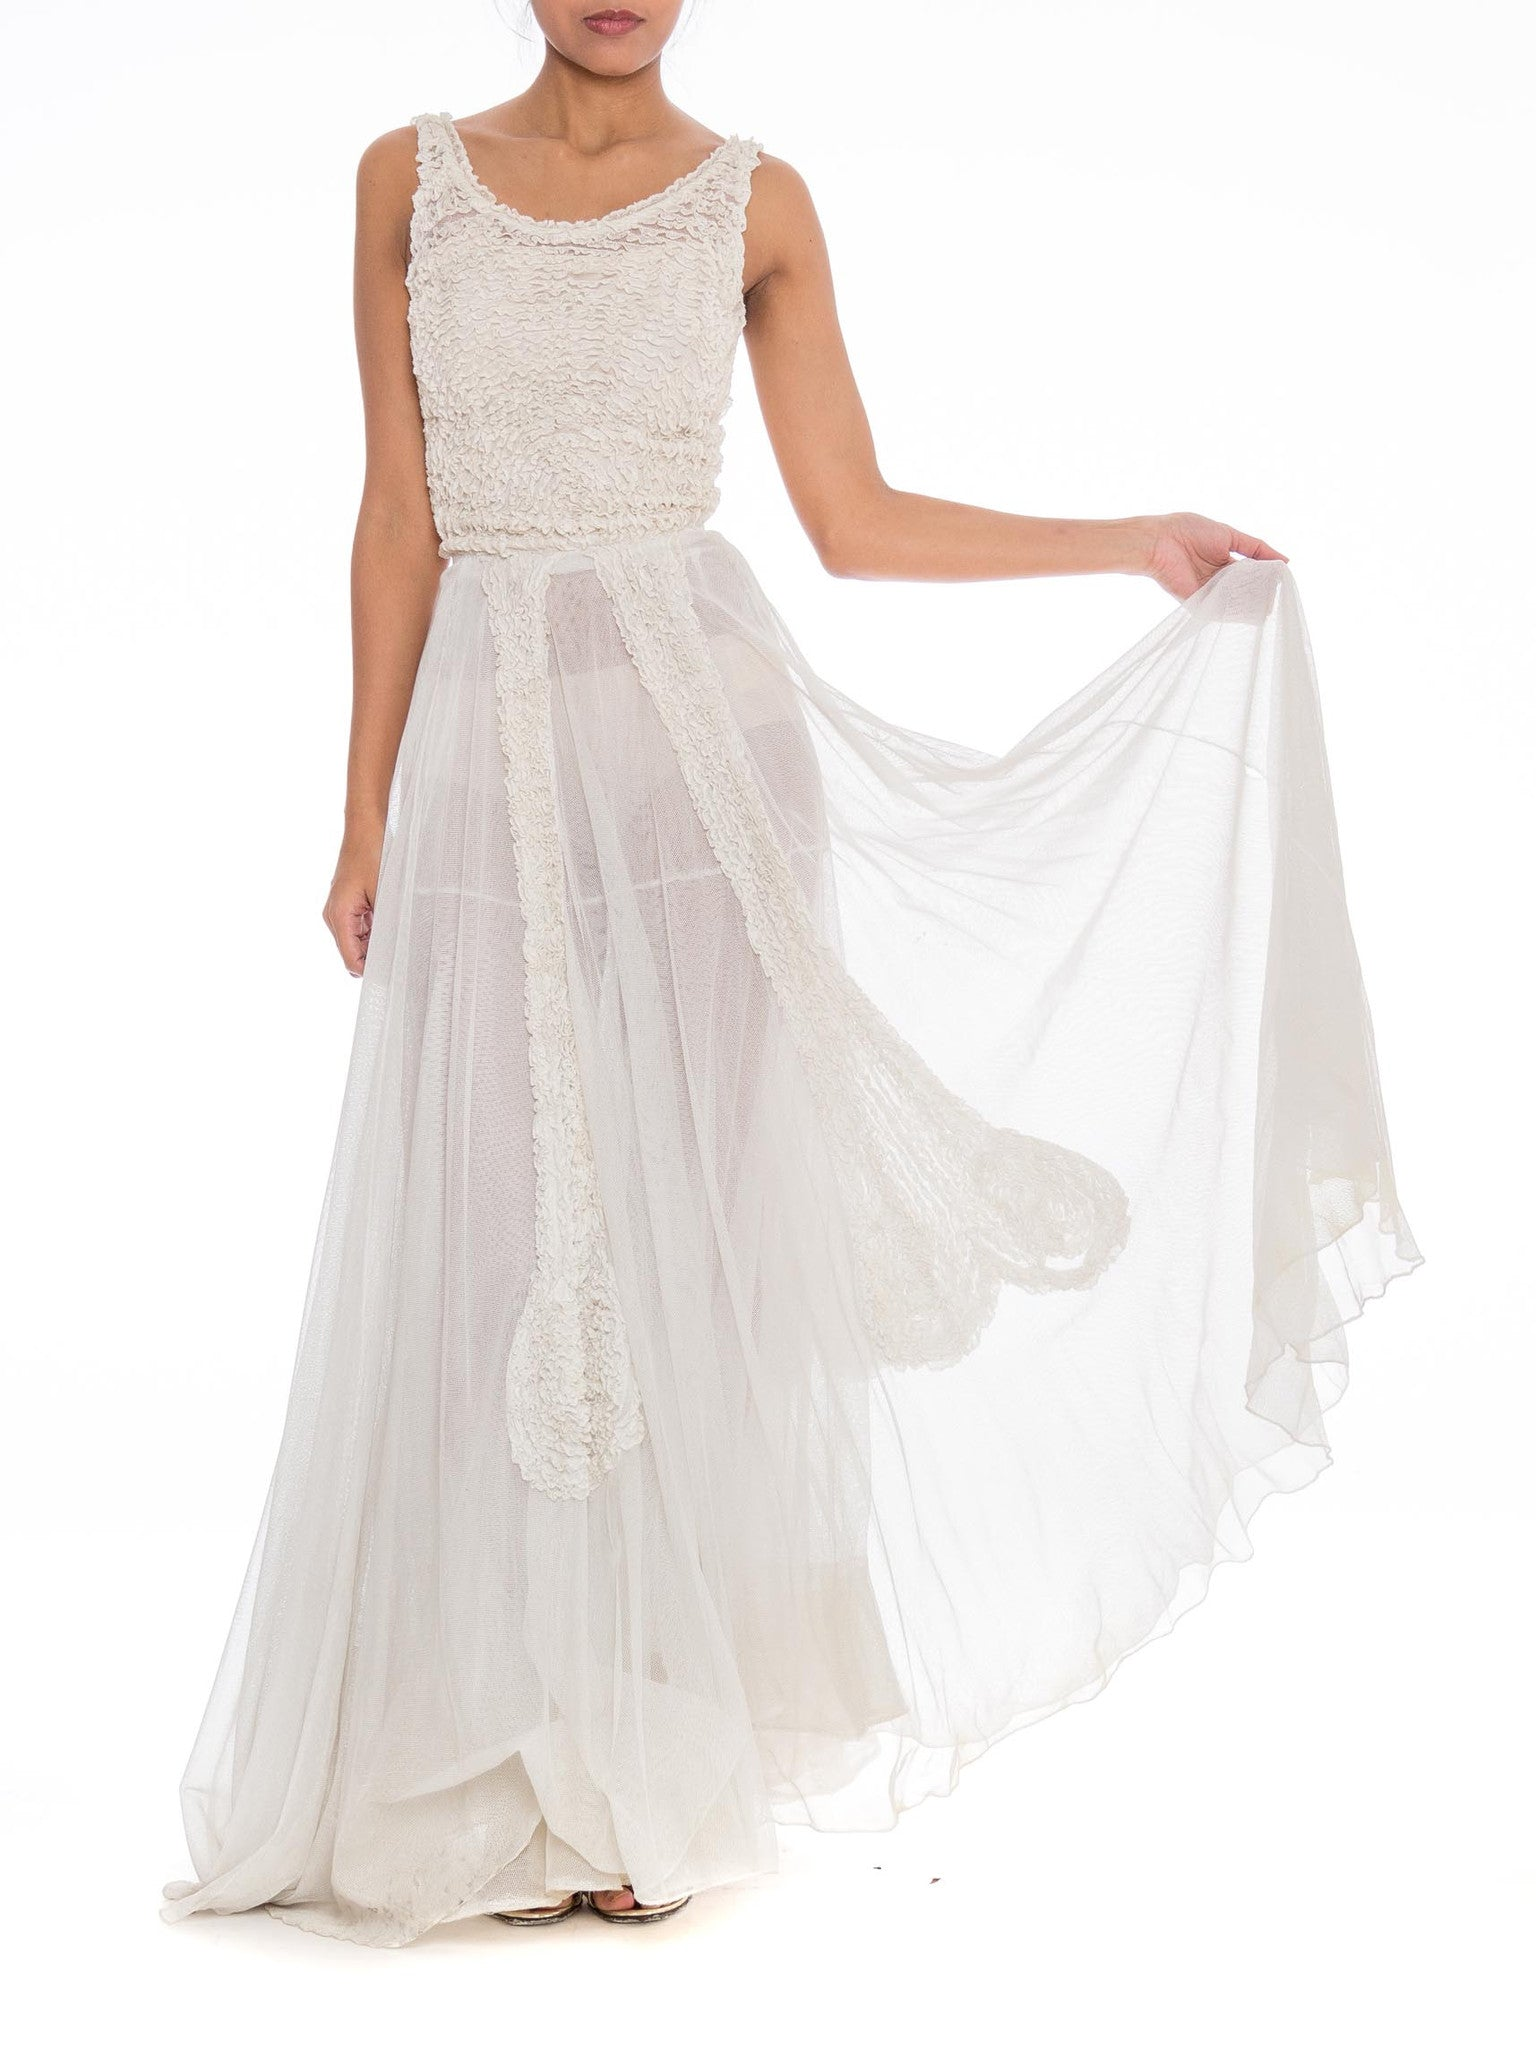 1930S Off White Rayon & Cotton Net Gown With Massive Double Layered Skirt